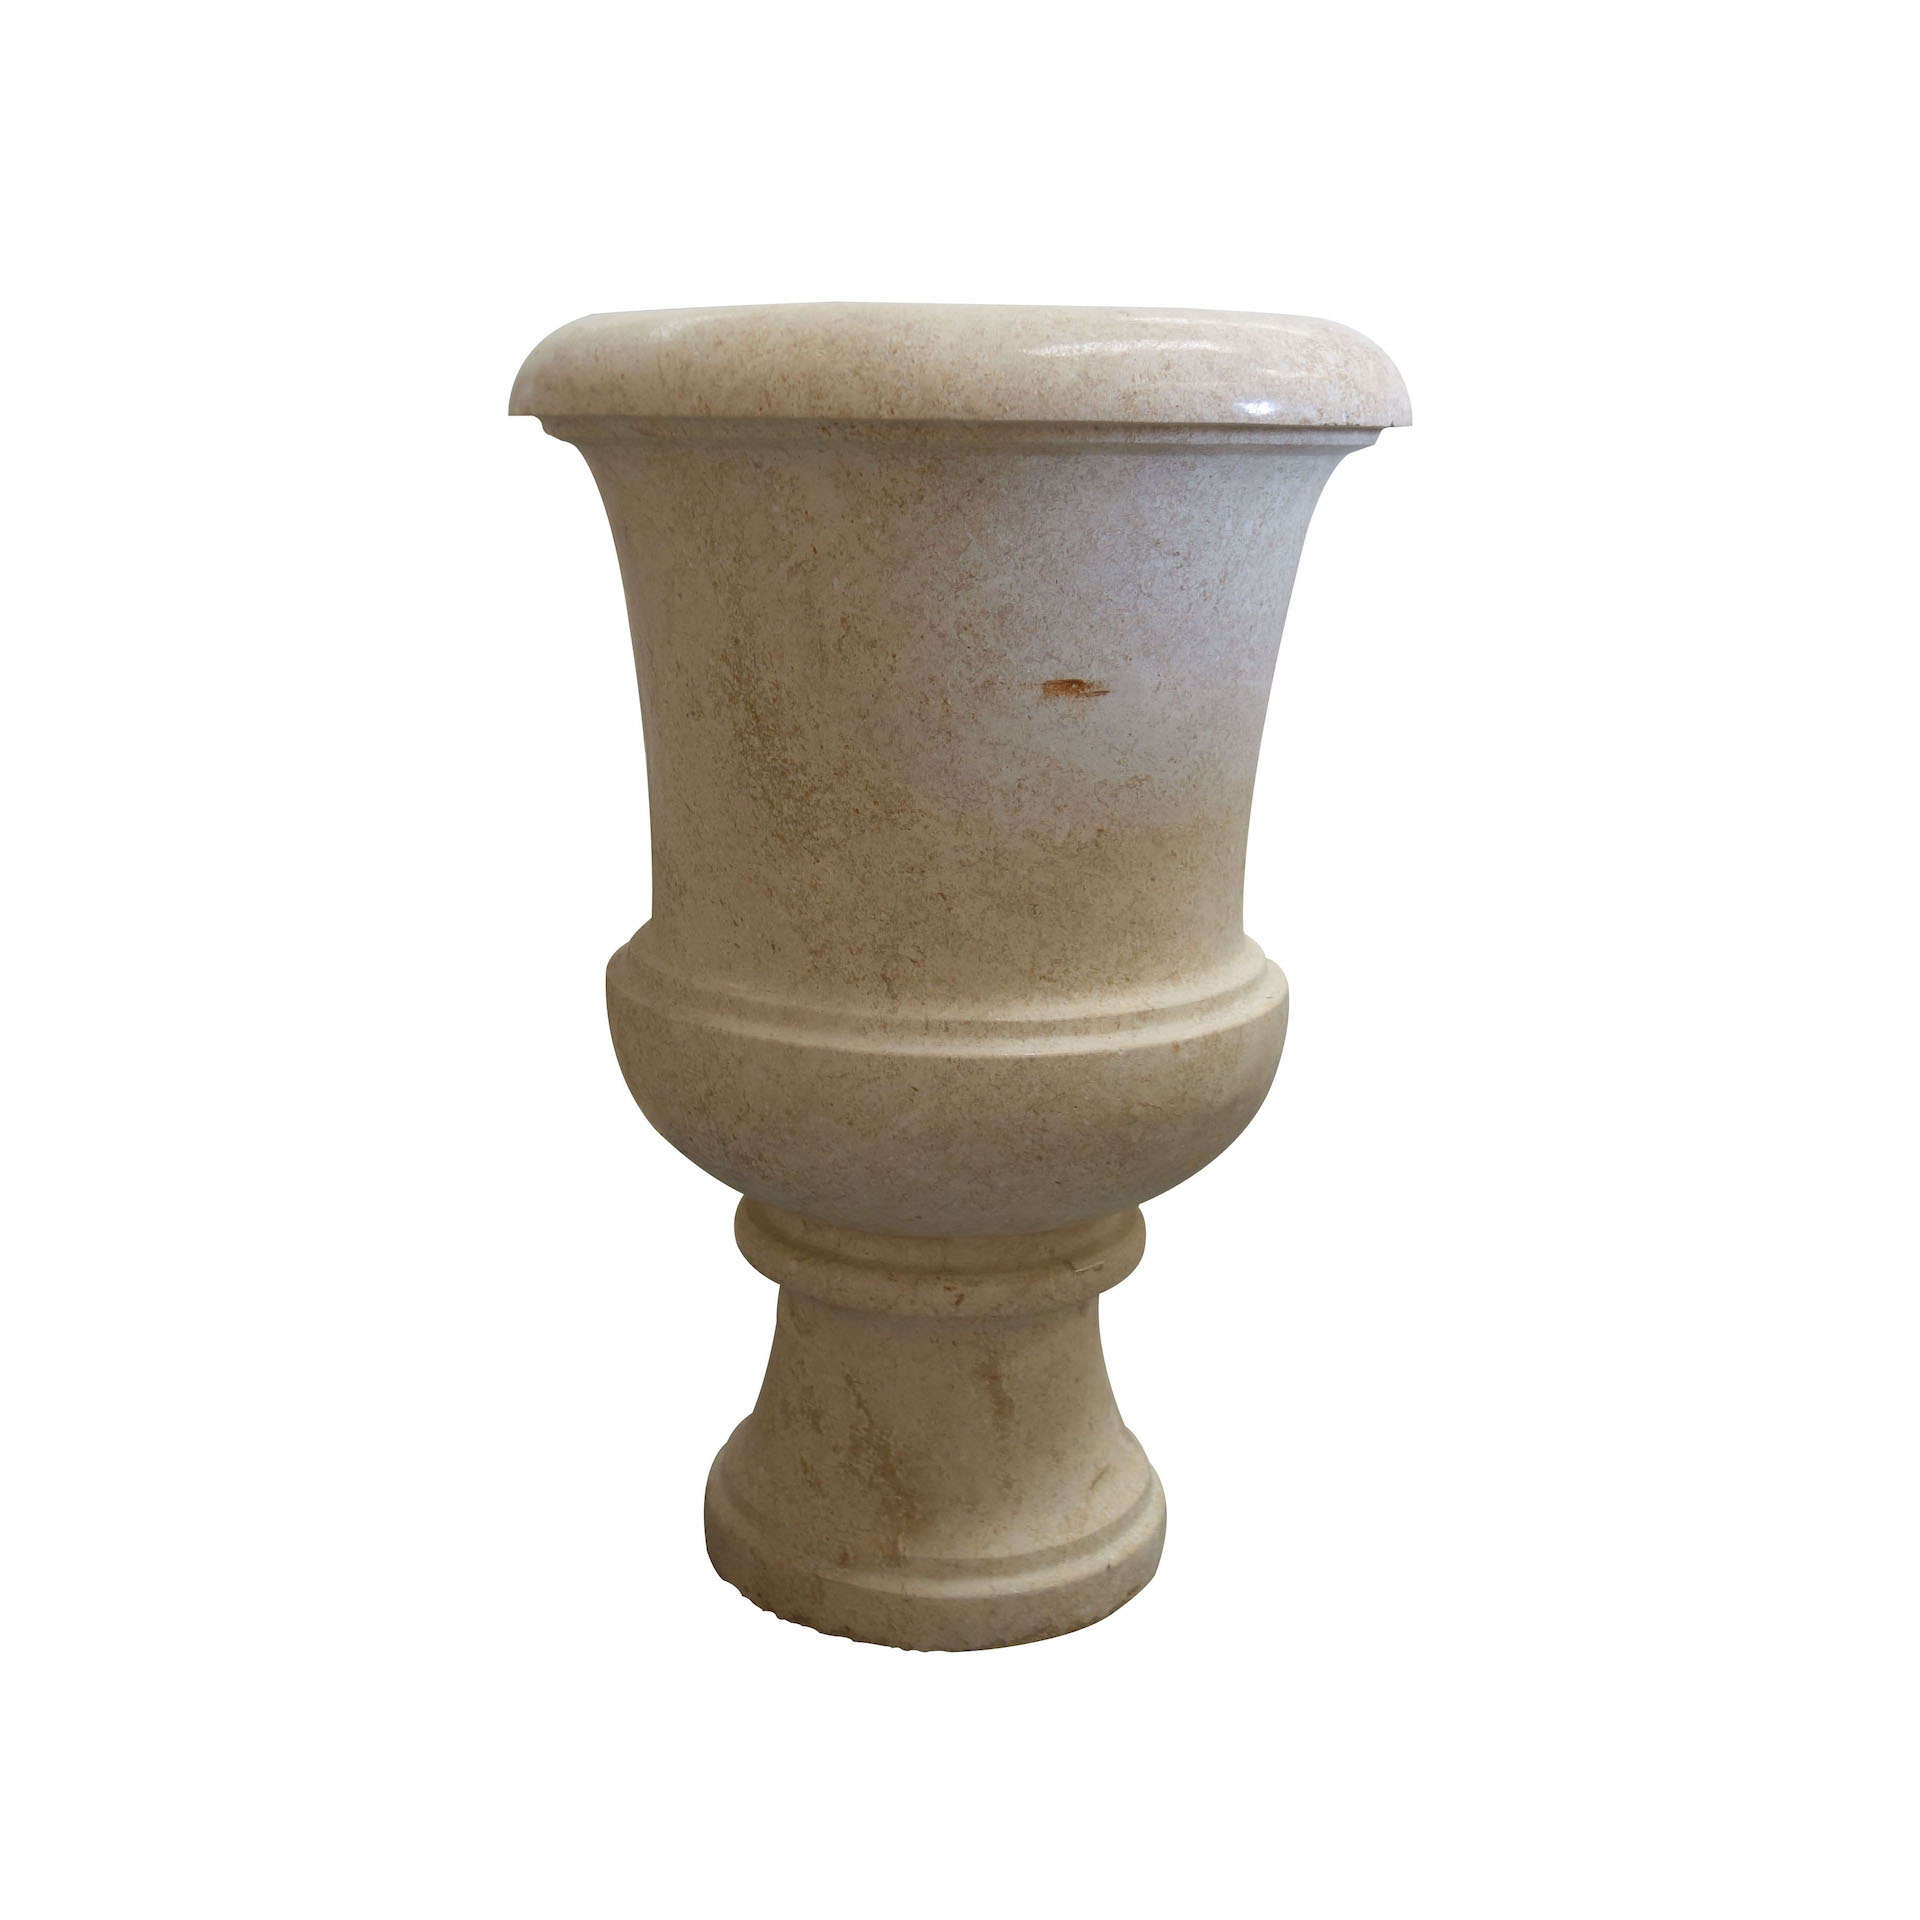 Light Yellow Stone Garden Urn urns, planters, vases